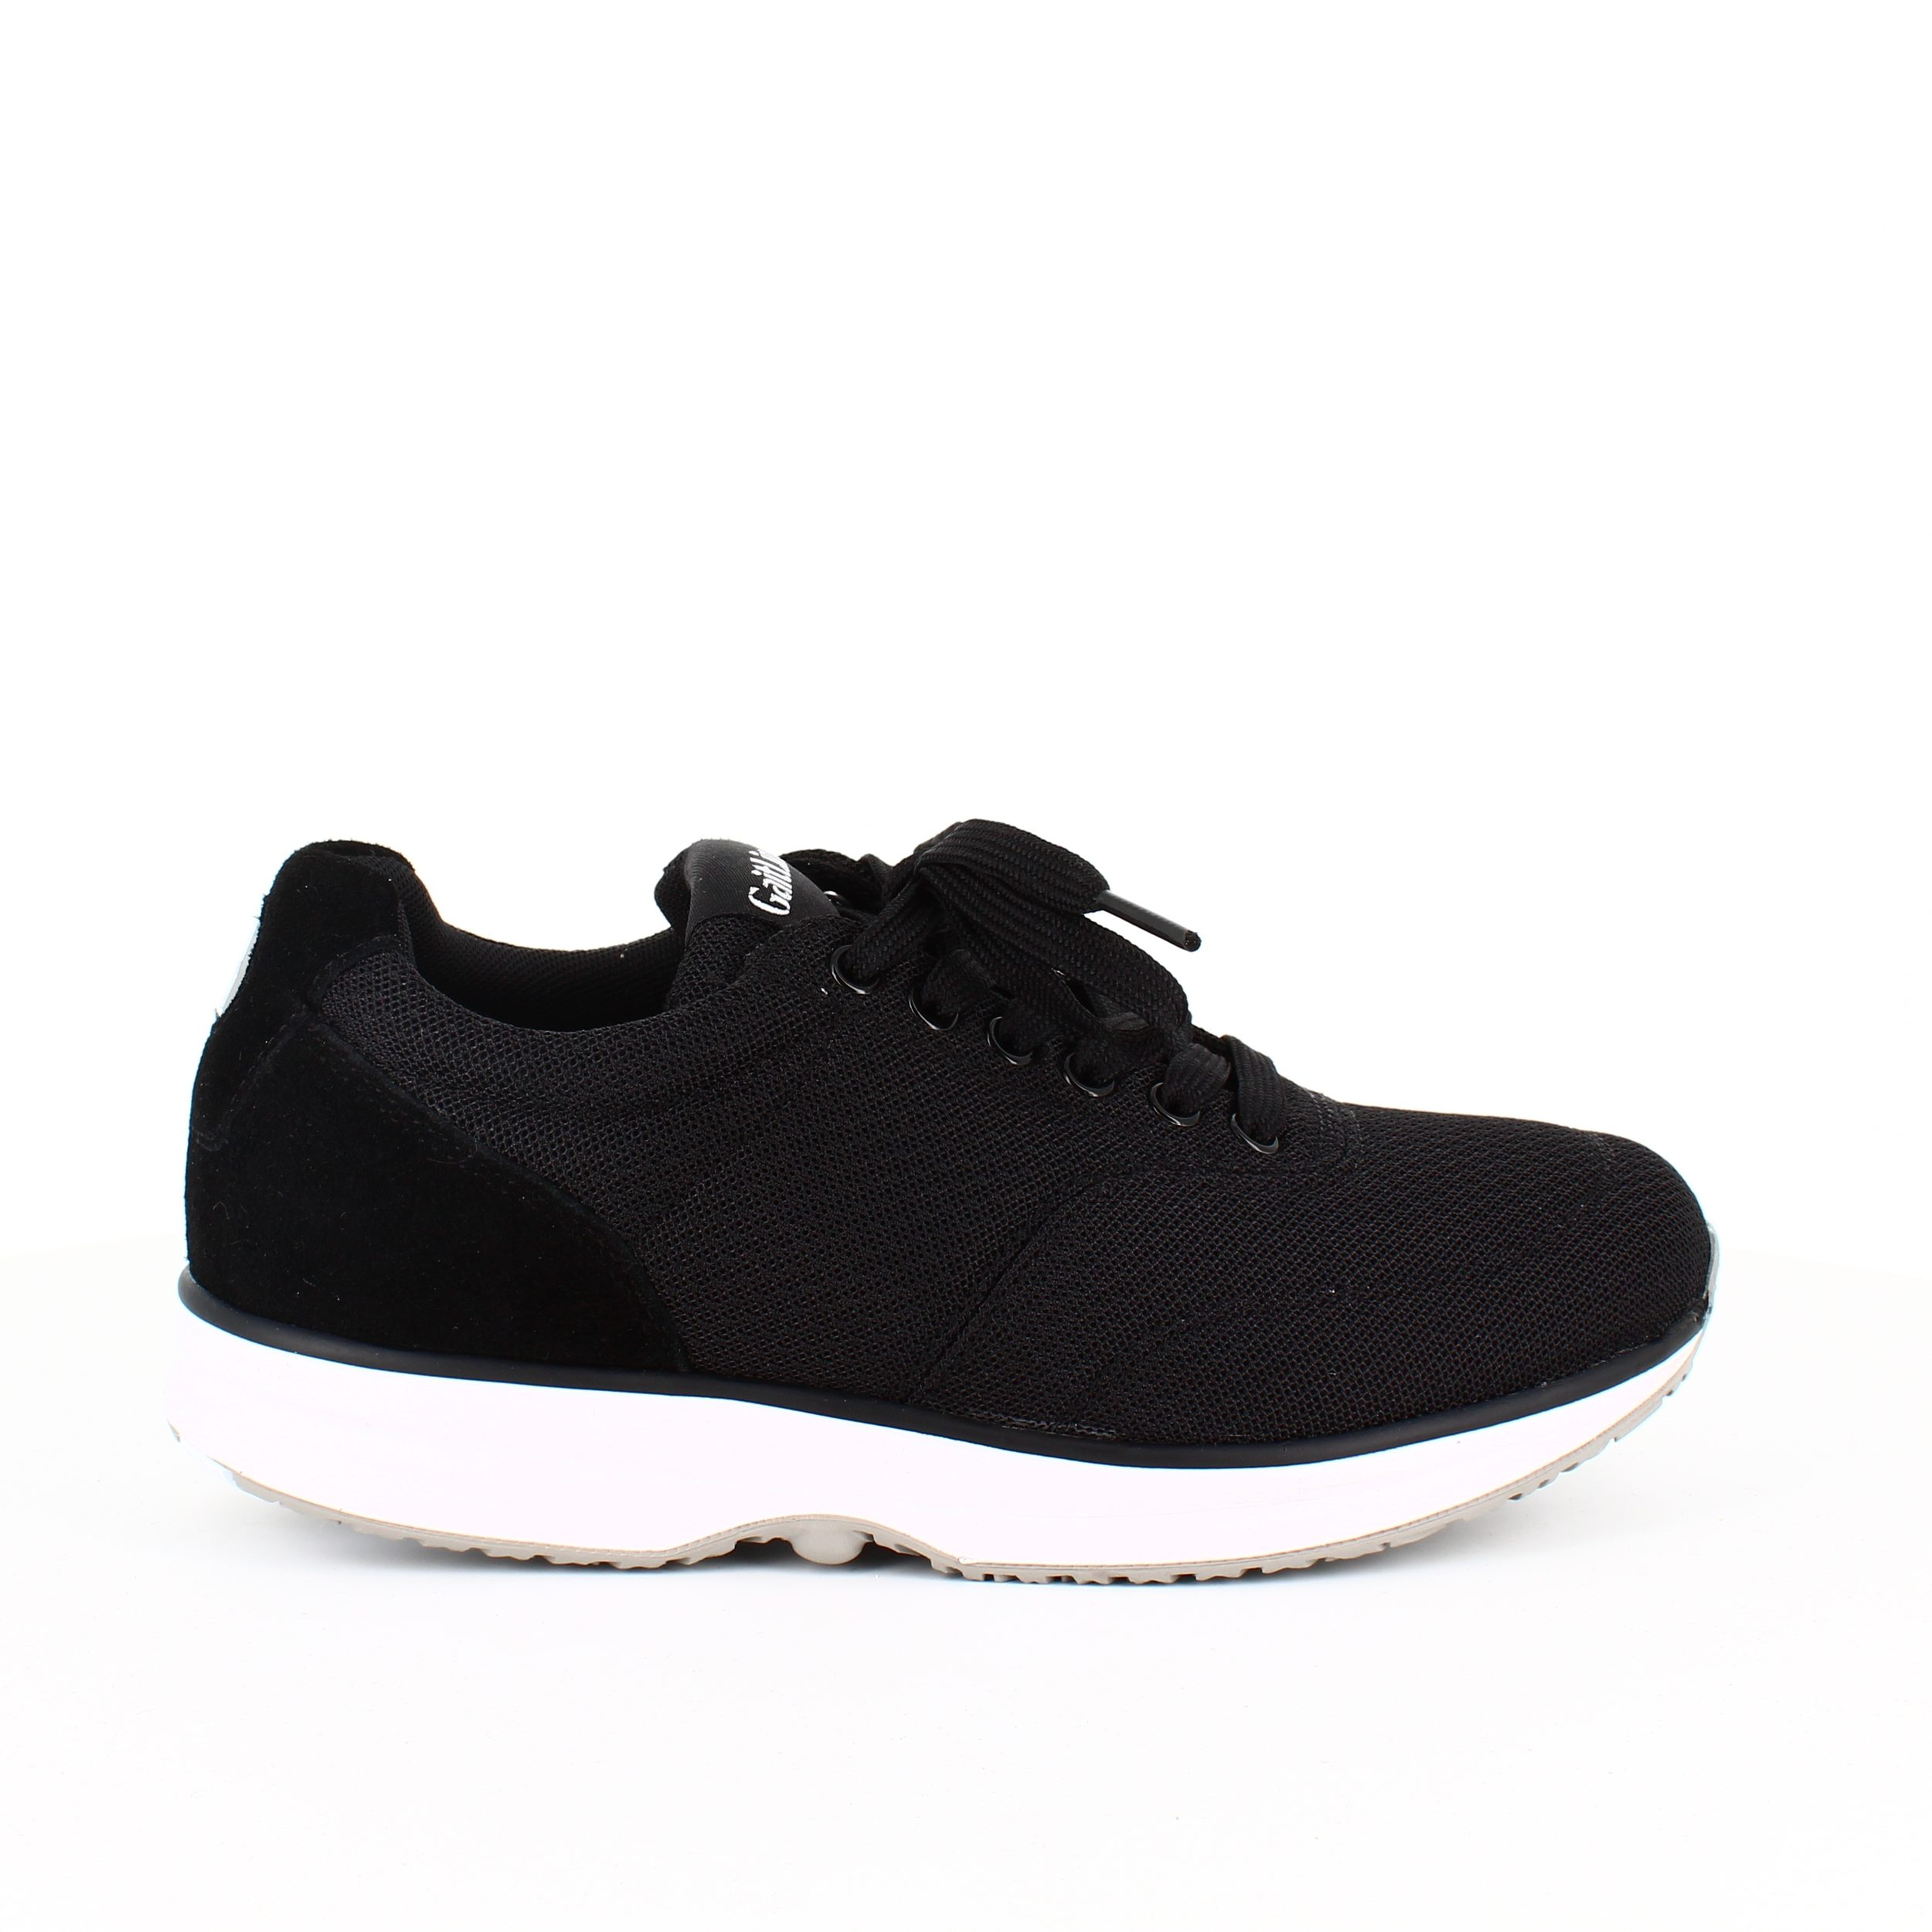 Image of   Flotte Sorte sneakers fra Gaitline - 43